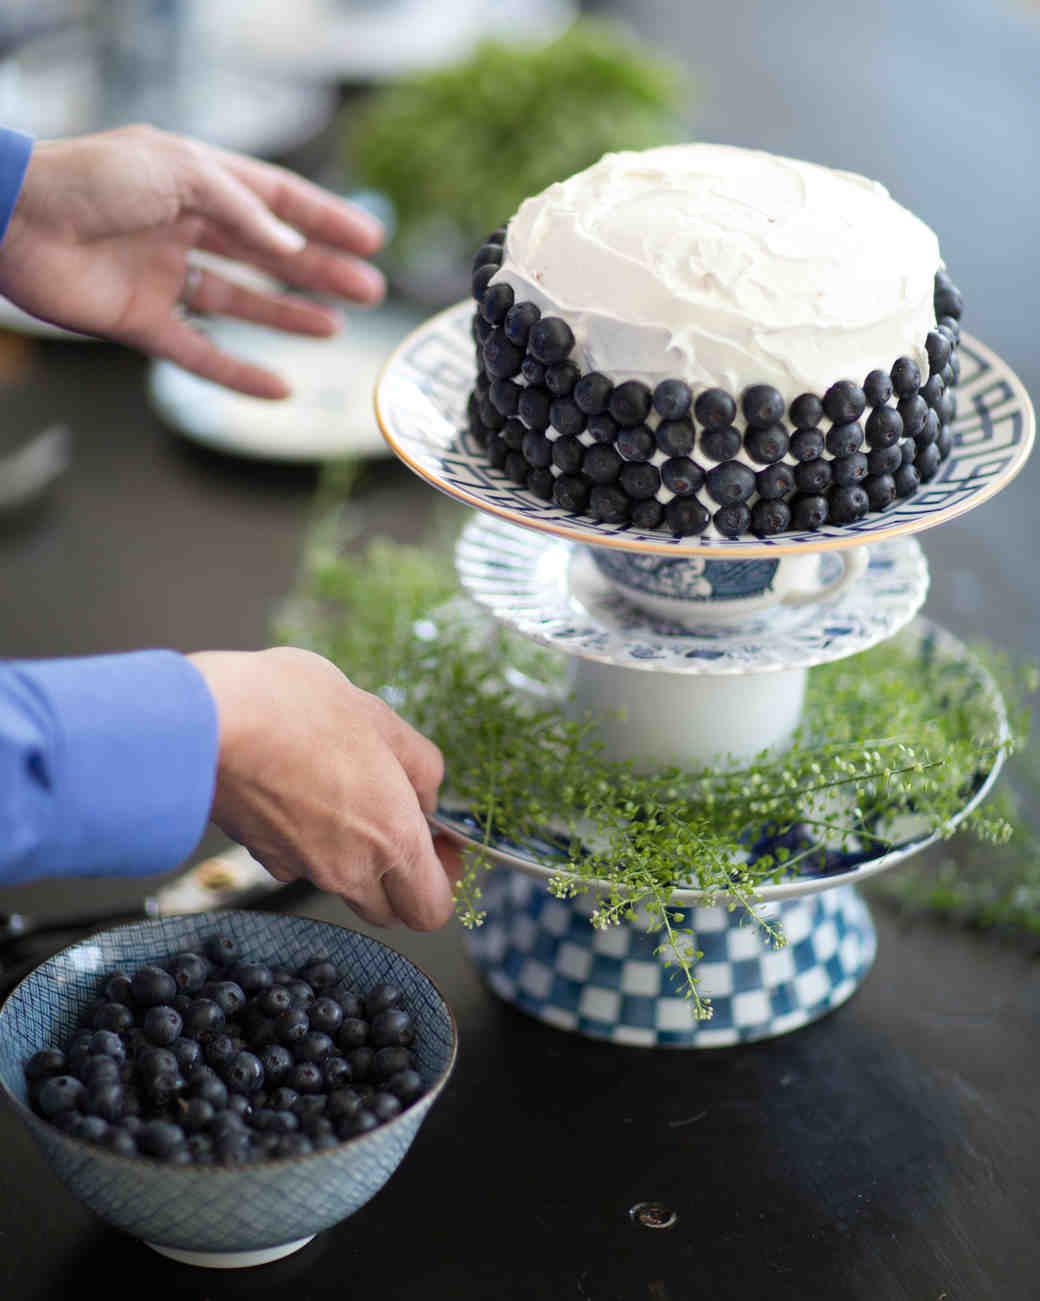 lela-rose-pret-a-party-book-launch-blueberry-cake-0915.jpg